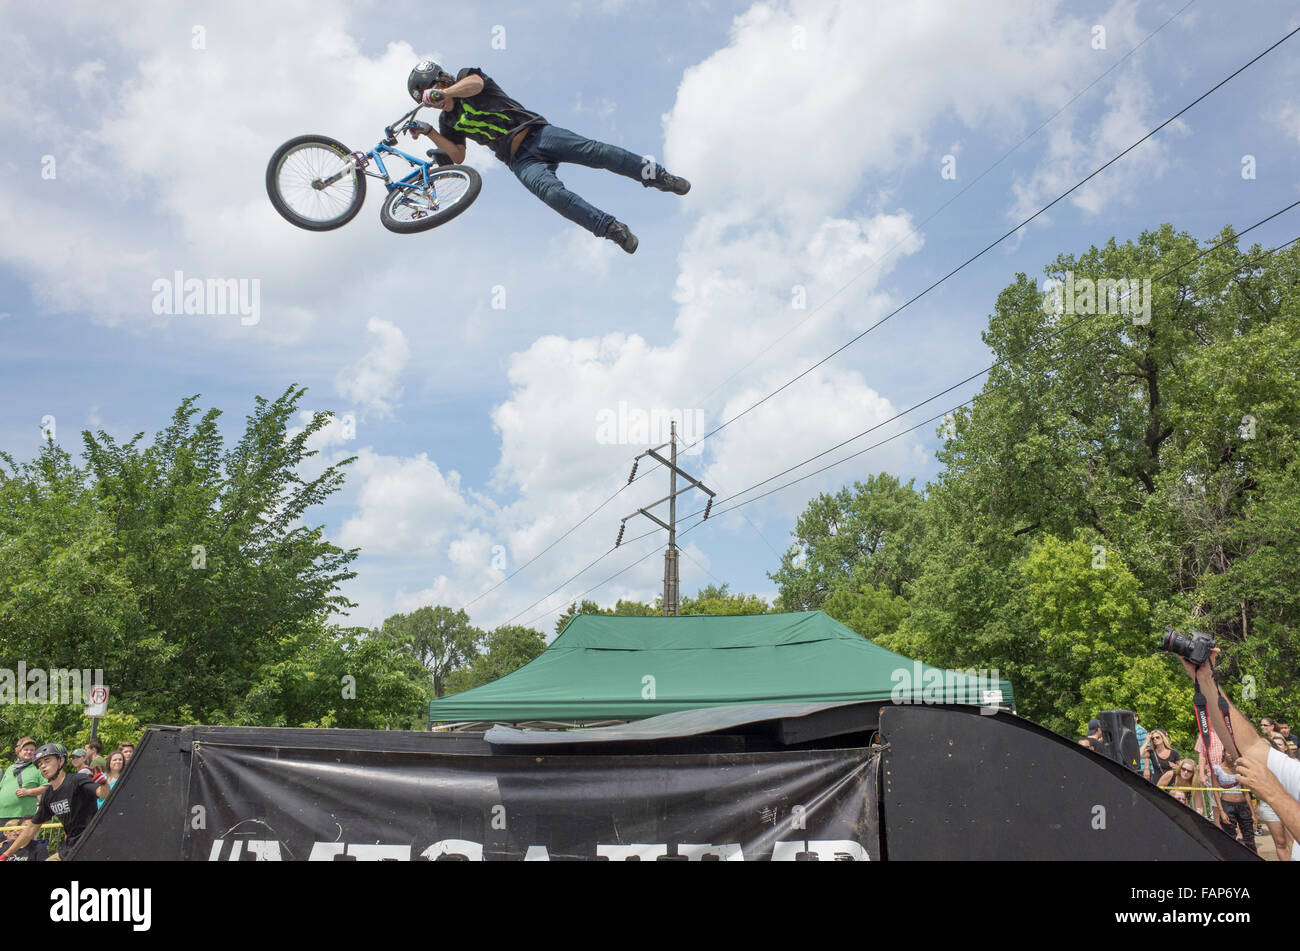 The Twin Cities Fantasy Factory Mega Jump Bicycling Stunt Show performing at Grand Old Day Street Fair. St Paul - Stock Image